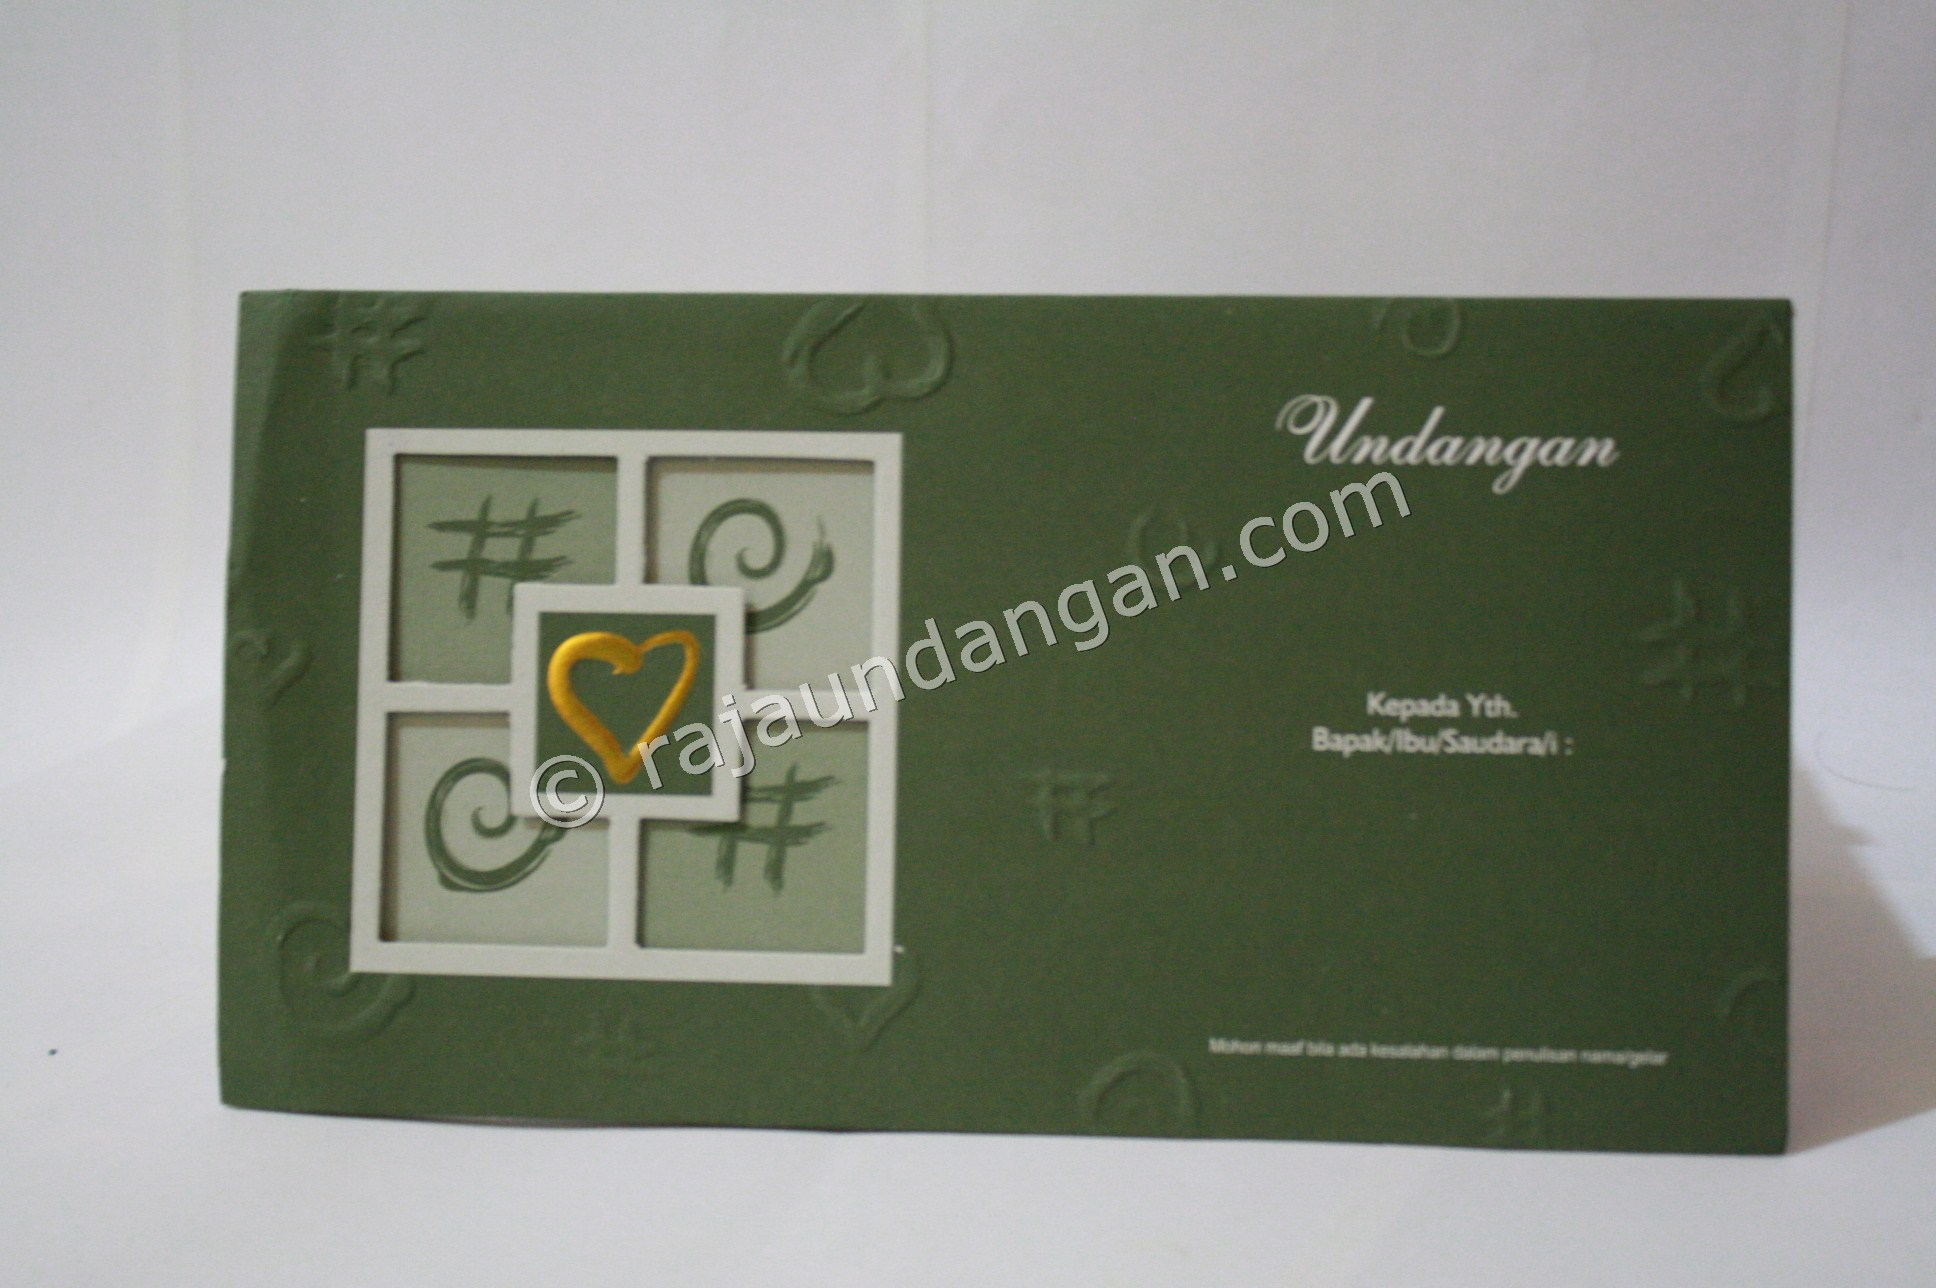 Undangan Pernikahan Softcover Supri dan Dewi 1 - Membuat Wedding Invitations Unik dan Simple di Sawahan